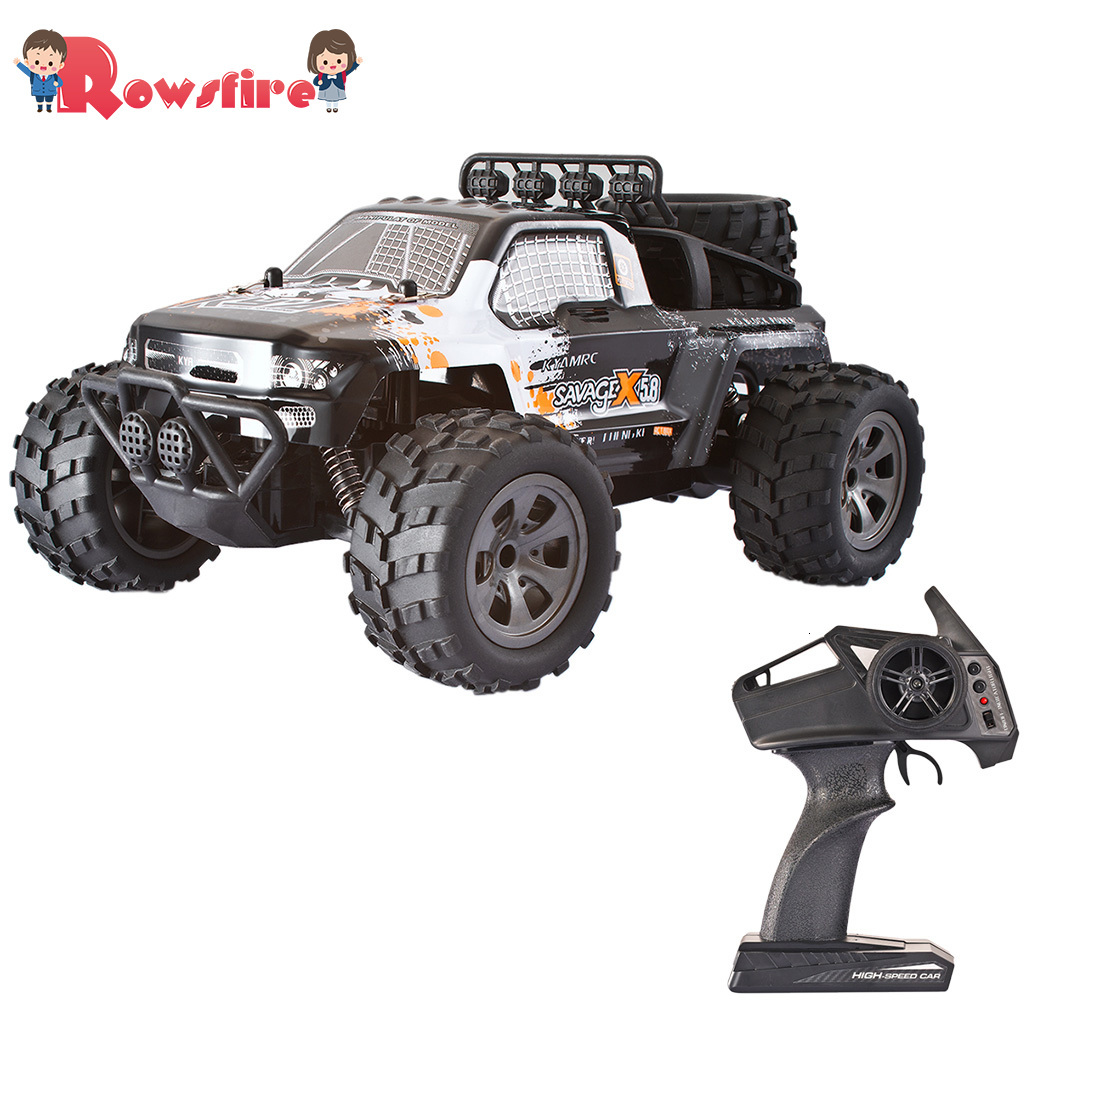 Rowsfire 1 Set 1:18 2.4G RC Cars Off-Road Vehicle Monster Trunk With Decorated Tire High Quality - Orange/Red/Green